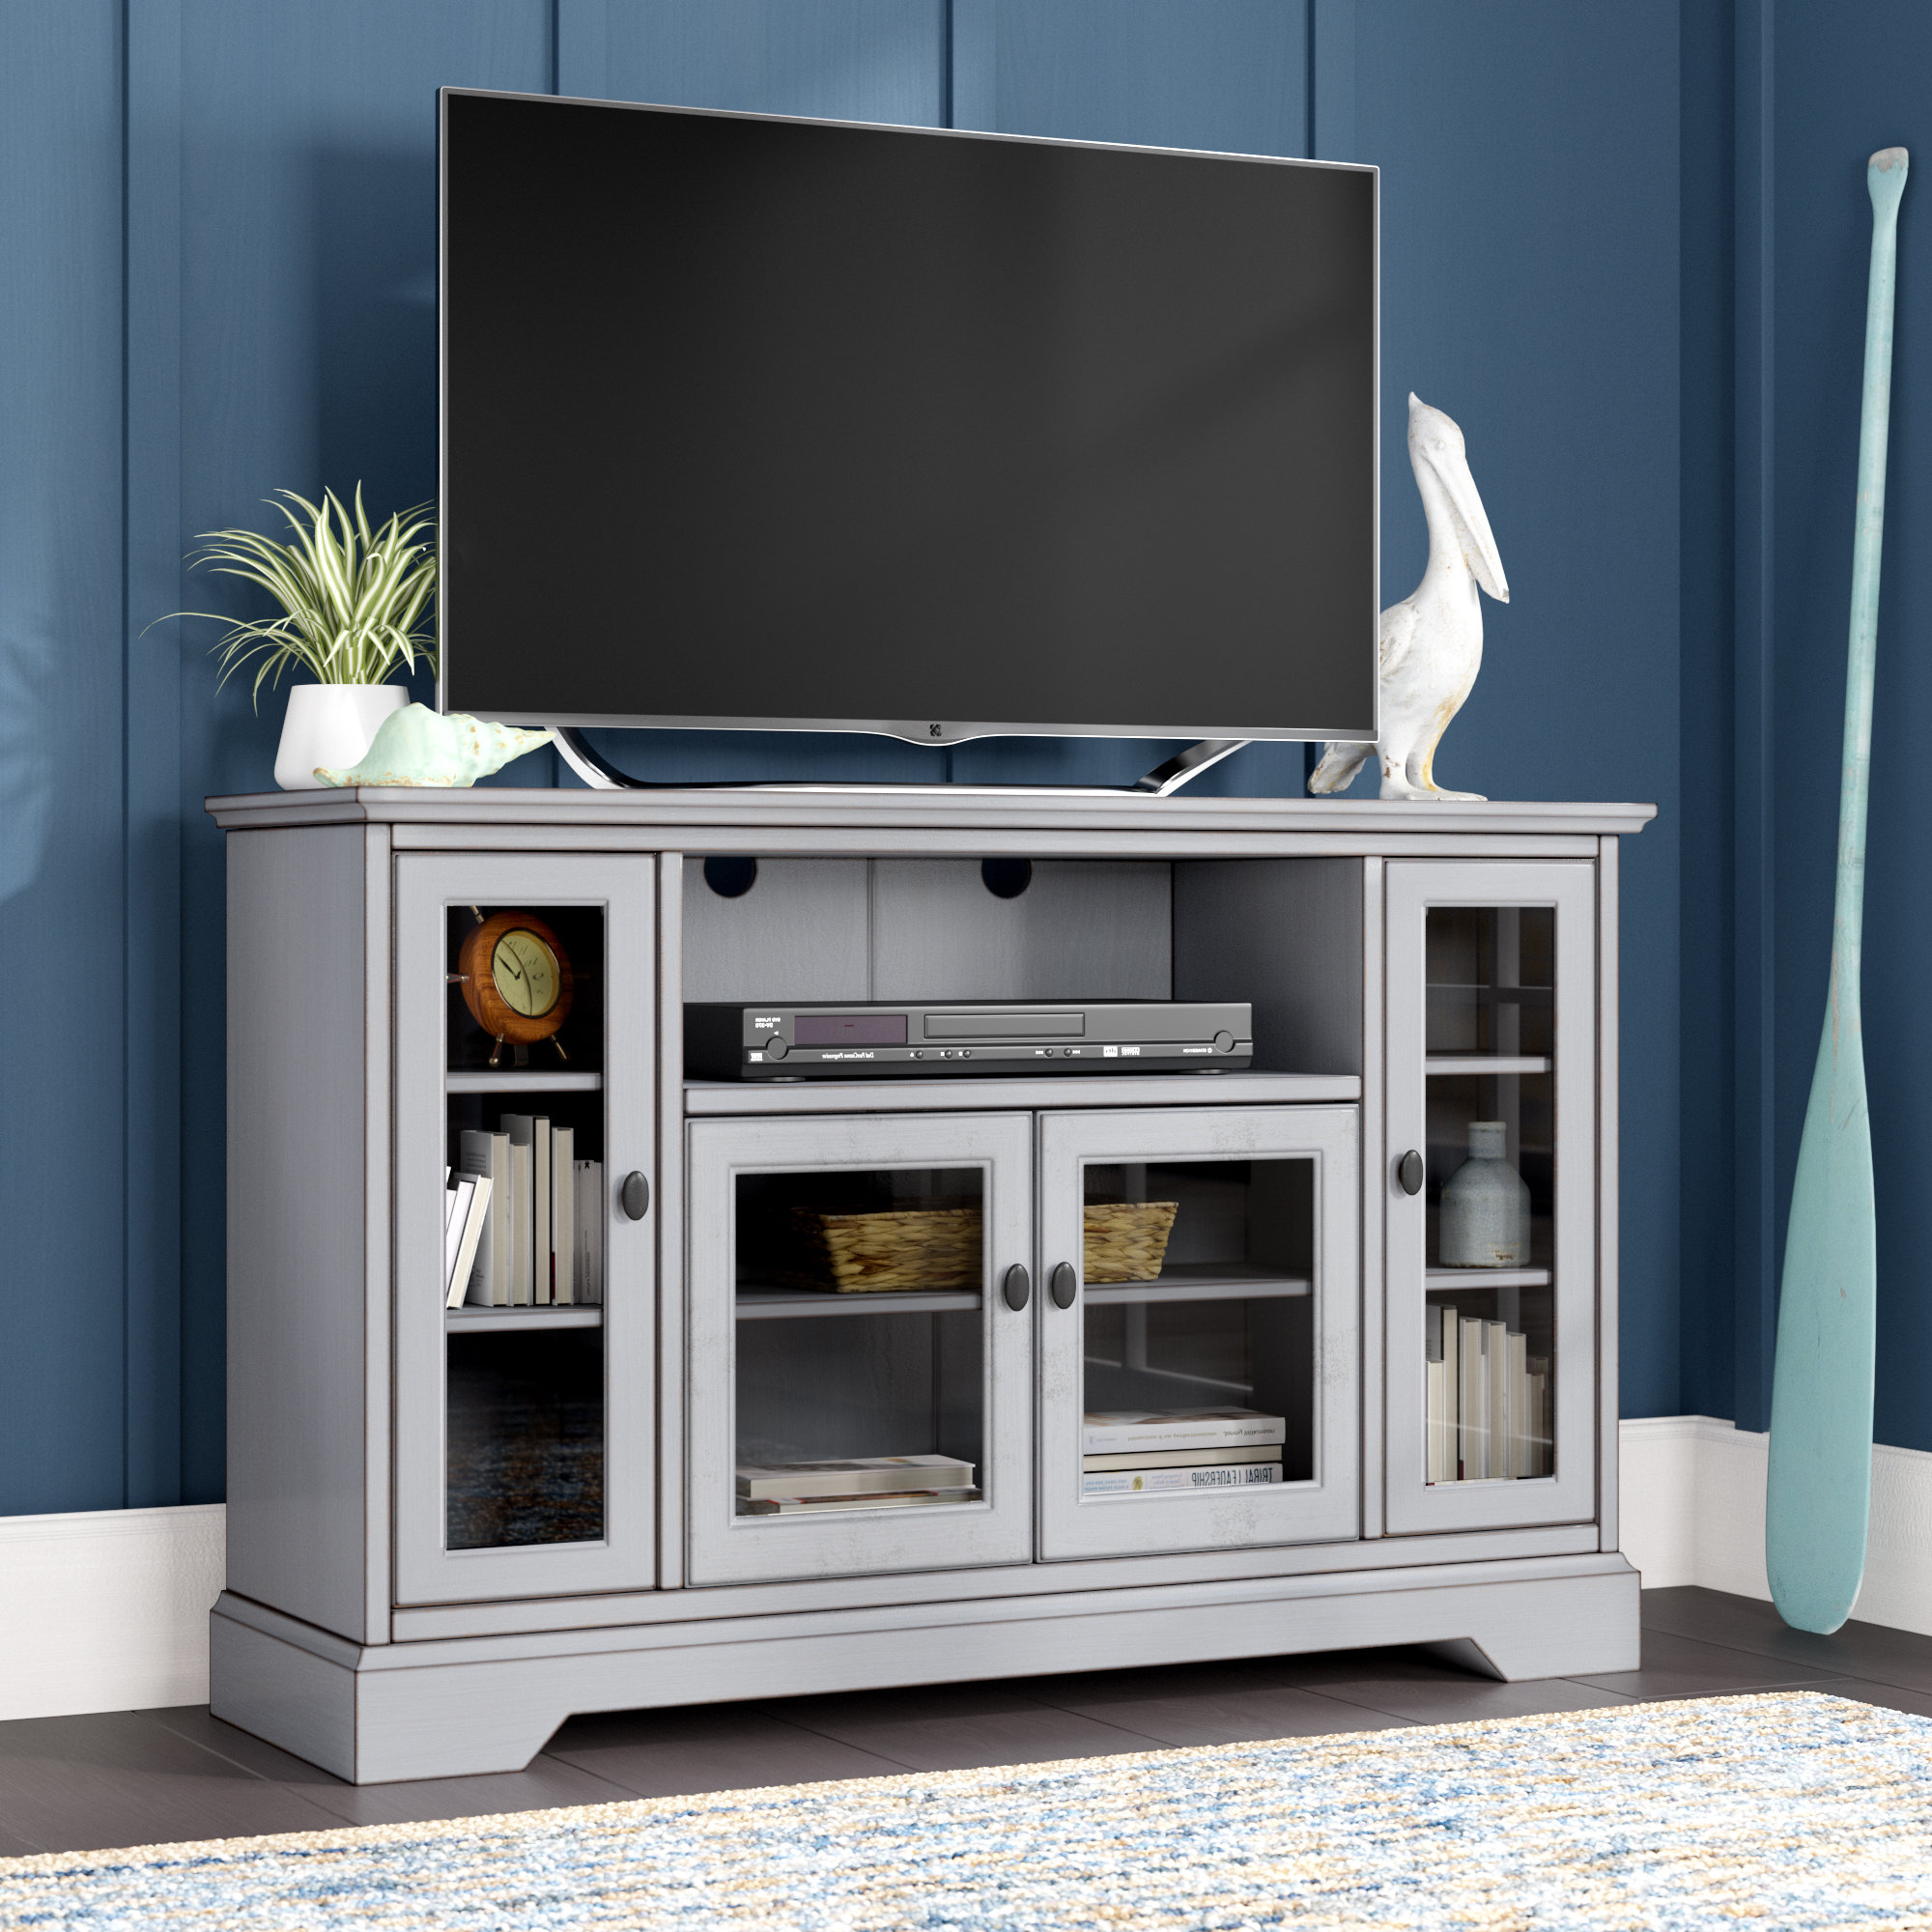 72 Inch Tv Stand | Wayfair For Kenzie 60 Inch Open Display Tv Stands (Gallery 12 of 20)